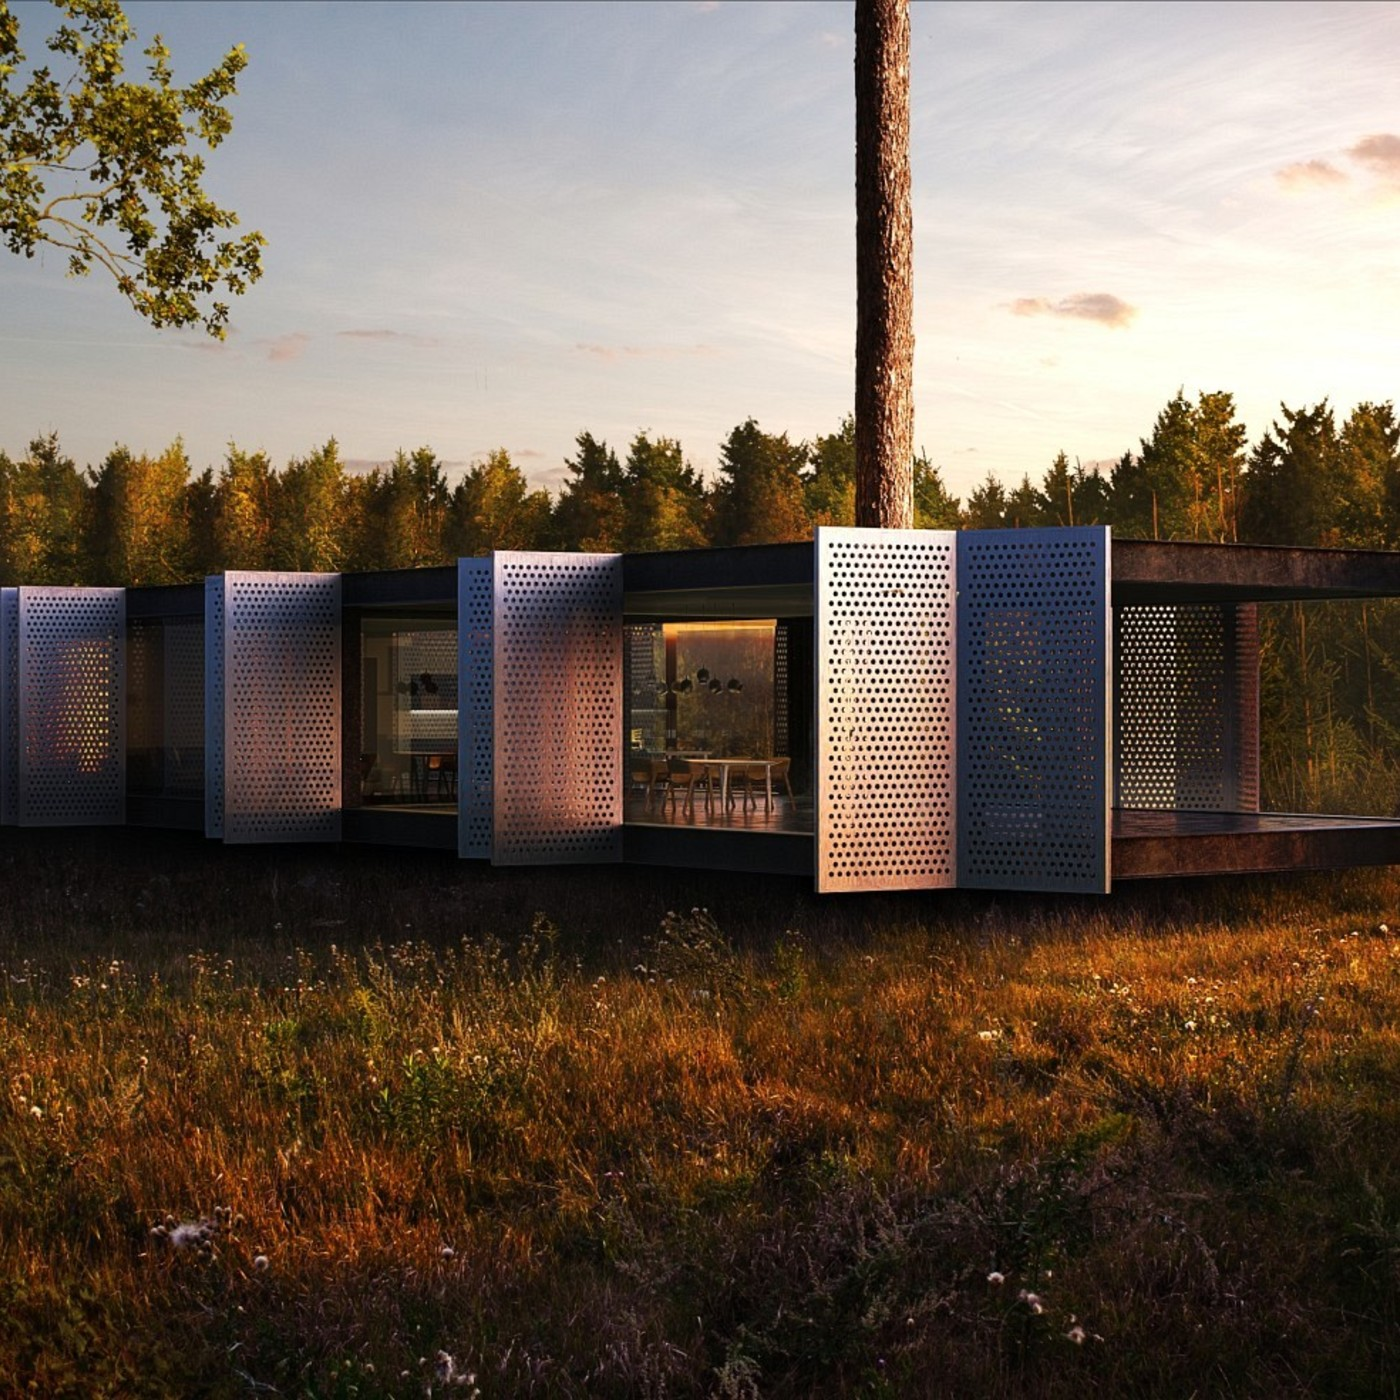 FlyingArchitecture Architectural Visualizations | CGTrader